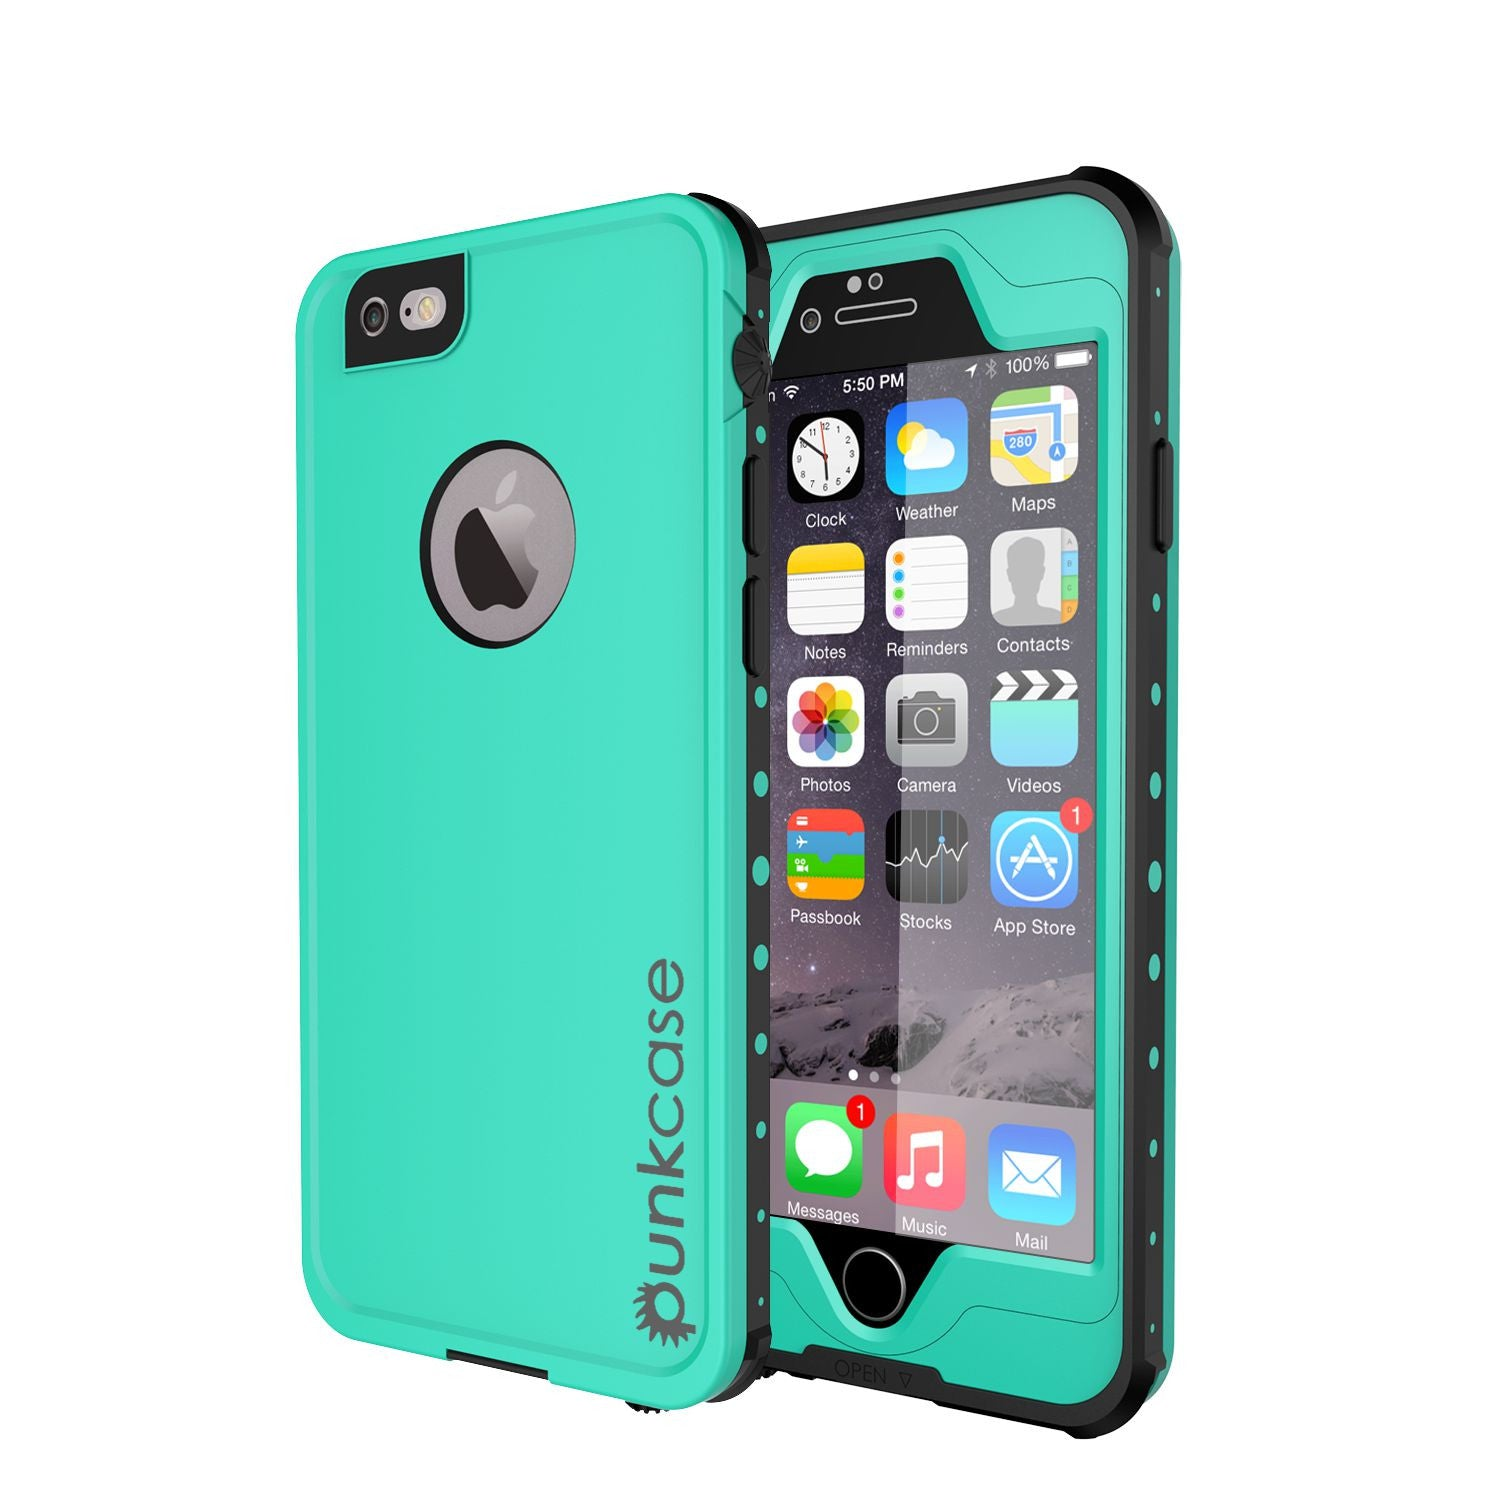 iphone 6 case drop proof